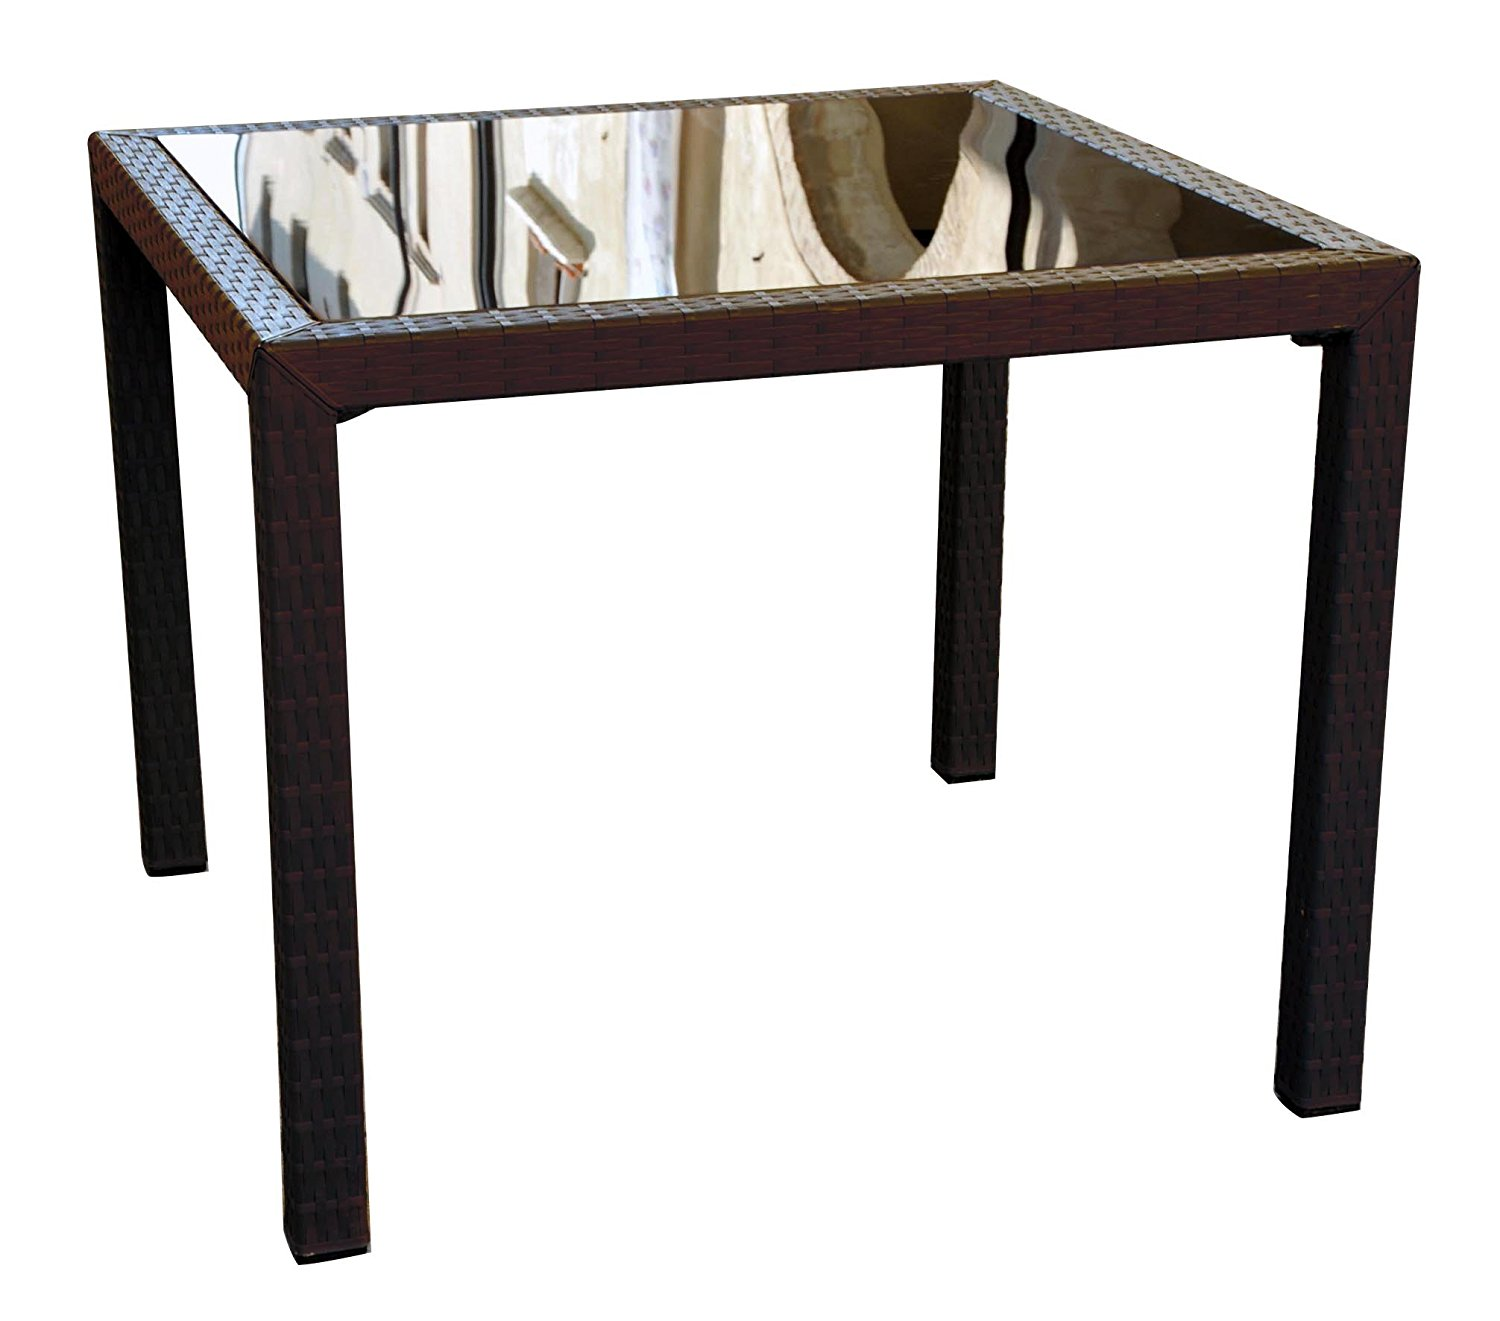 Miami Resin Wickerlook Square Dining Table  Image 832